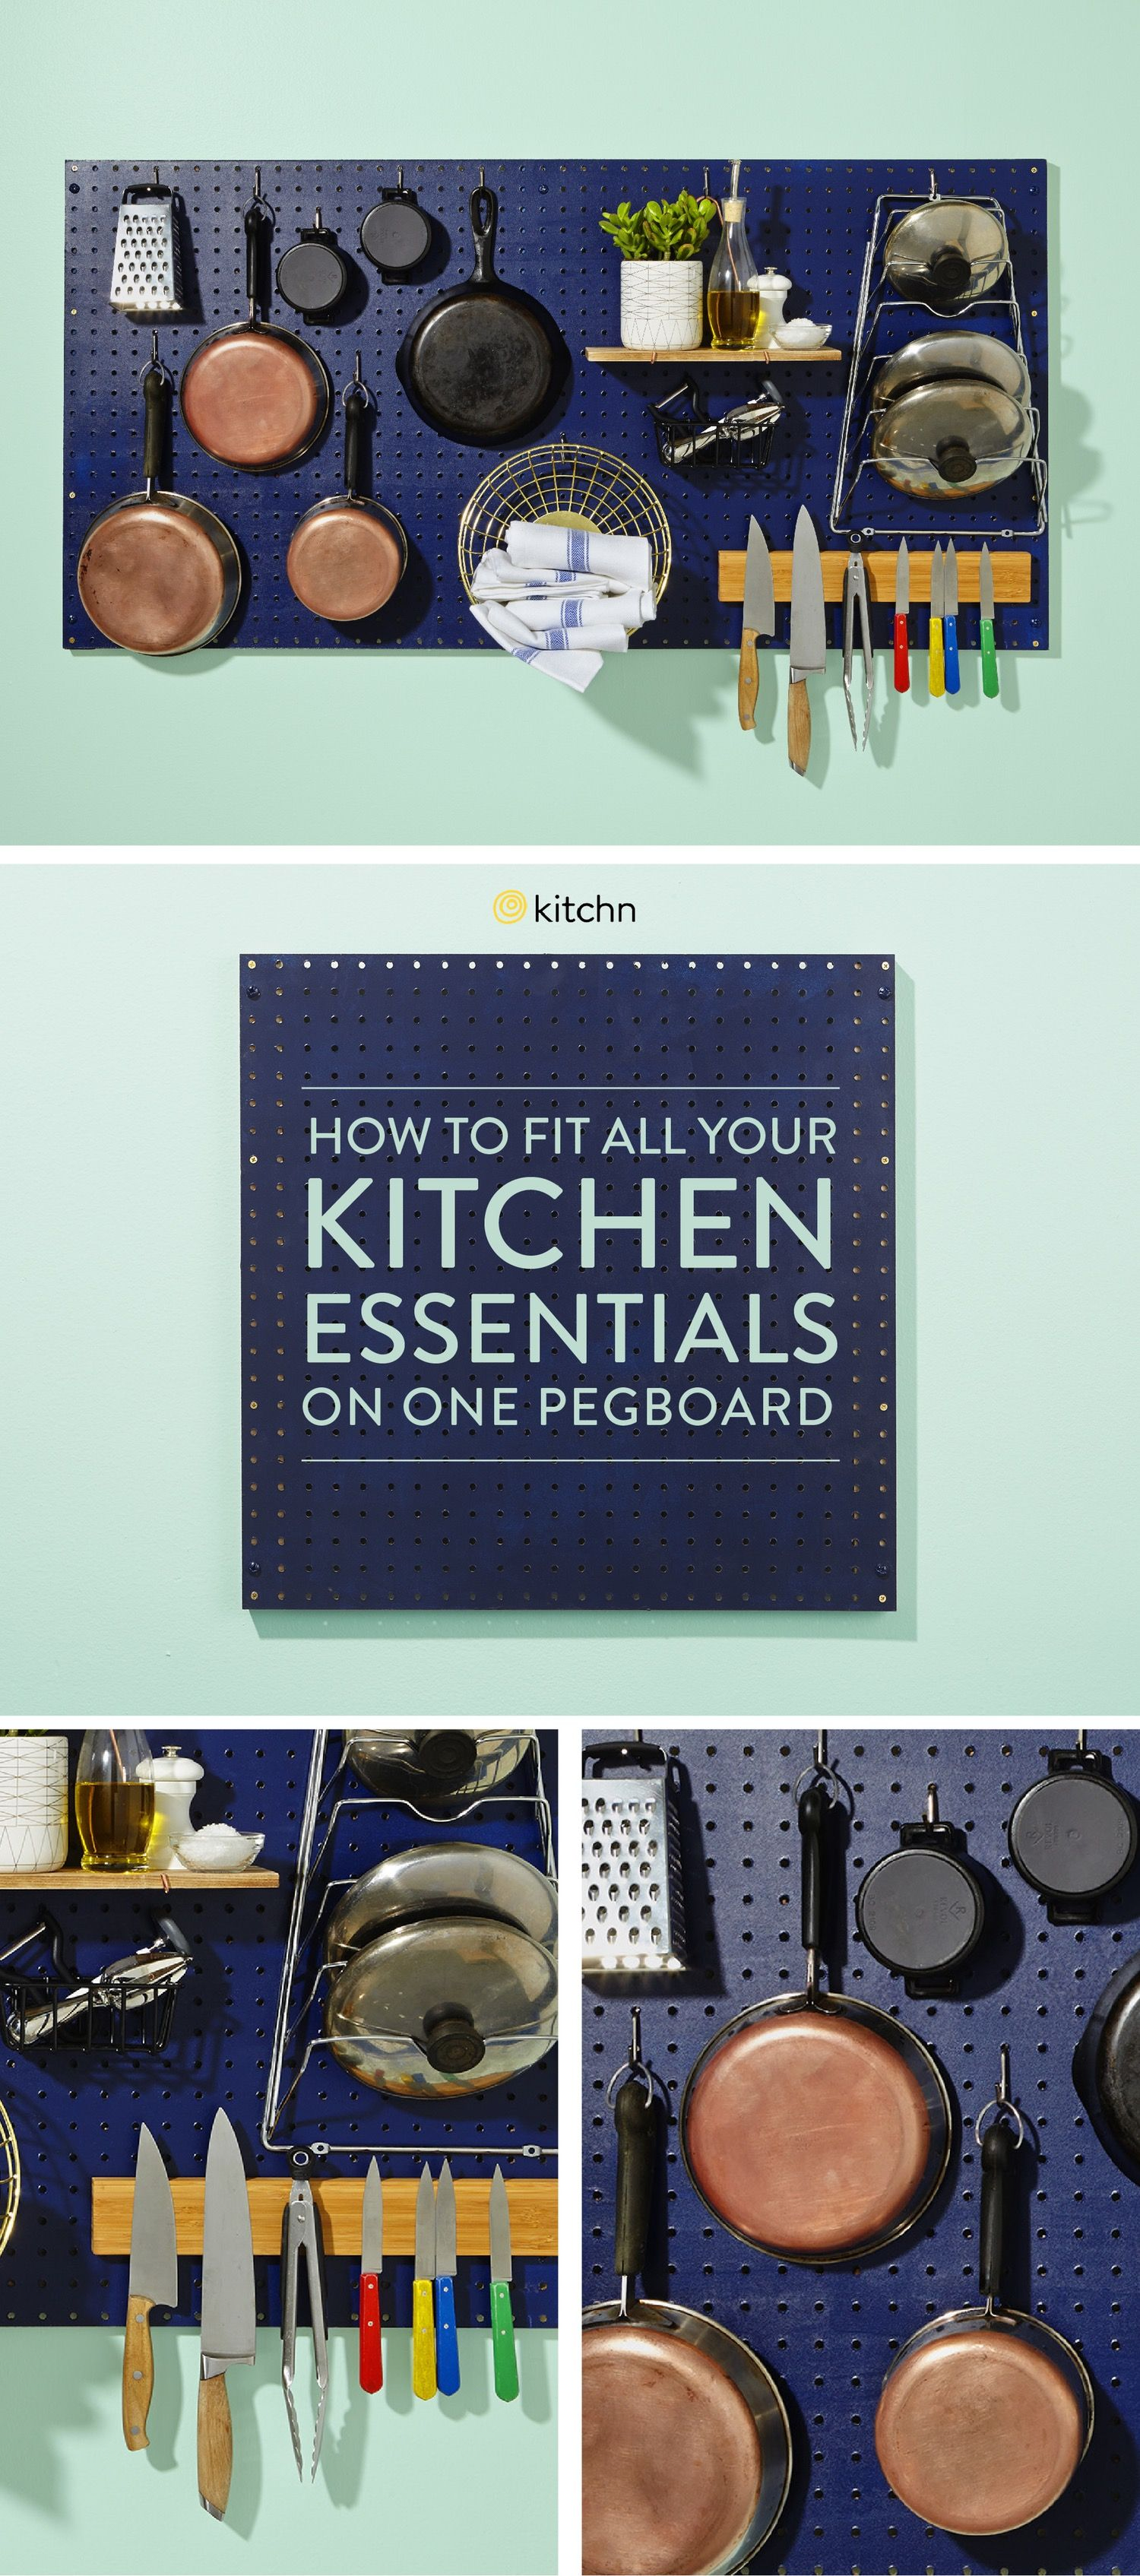 Küchenideen groß how to store every kitchen essential on one pegboard  interior